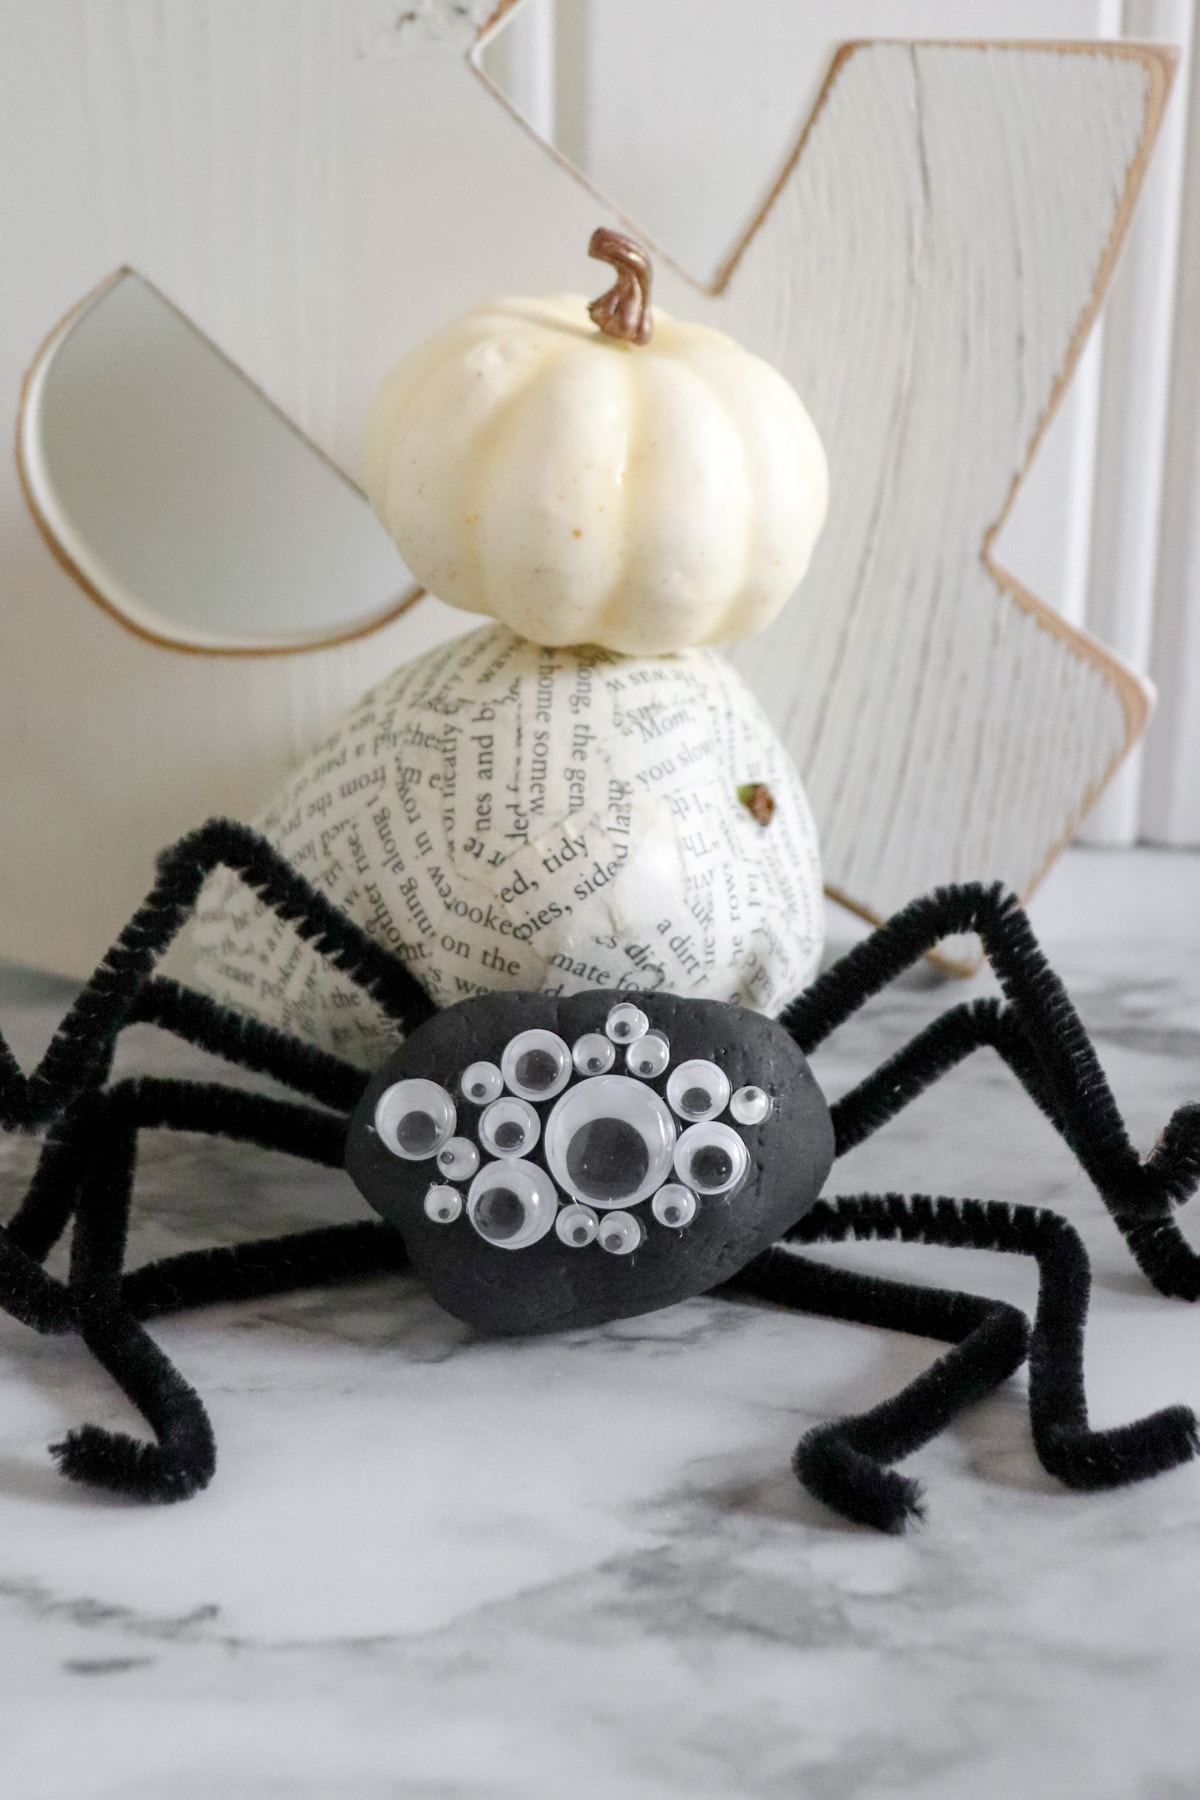 Painted spider rock, a fun halloween rock painting idea